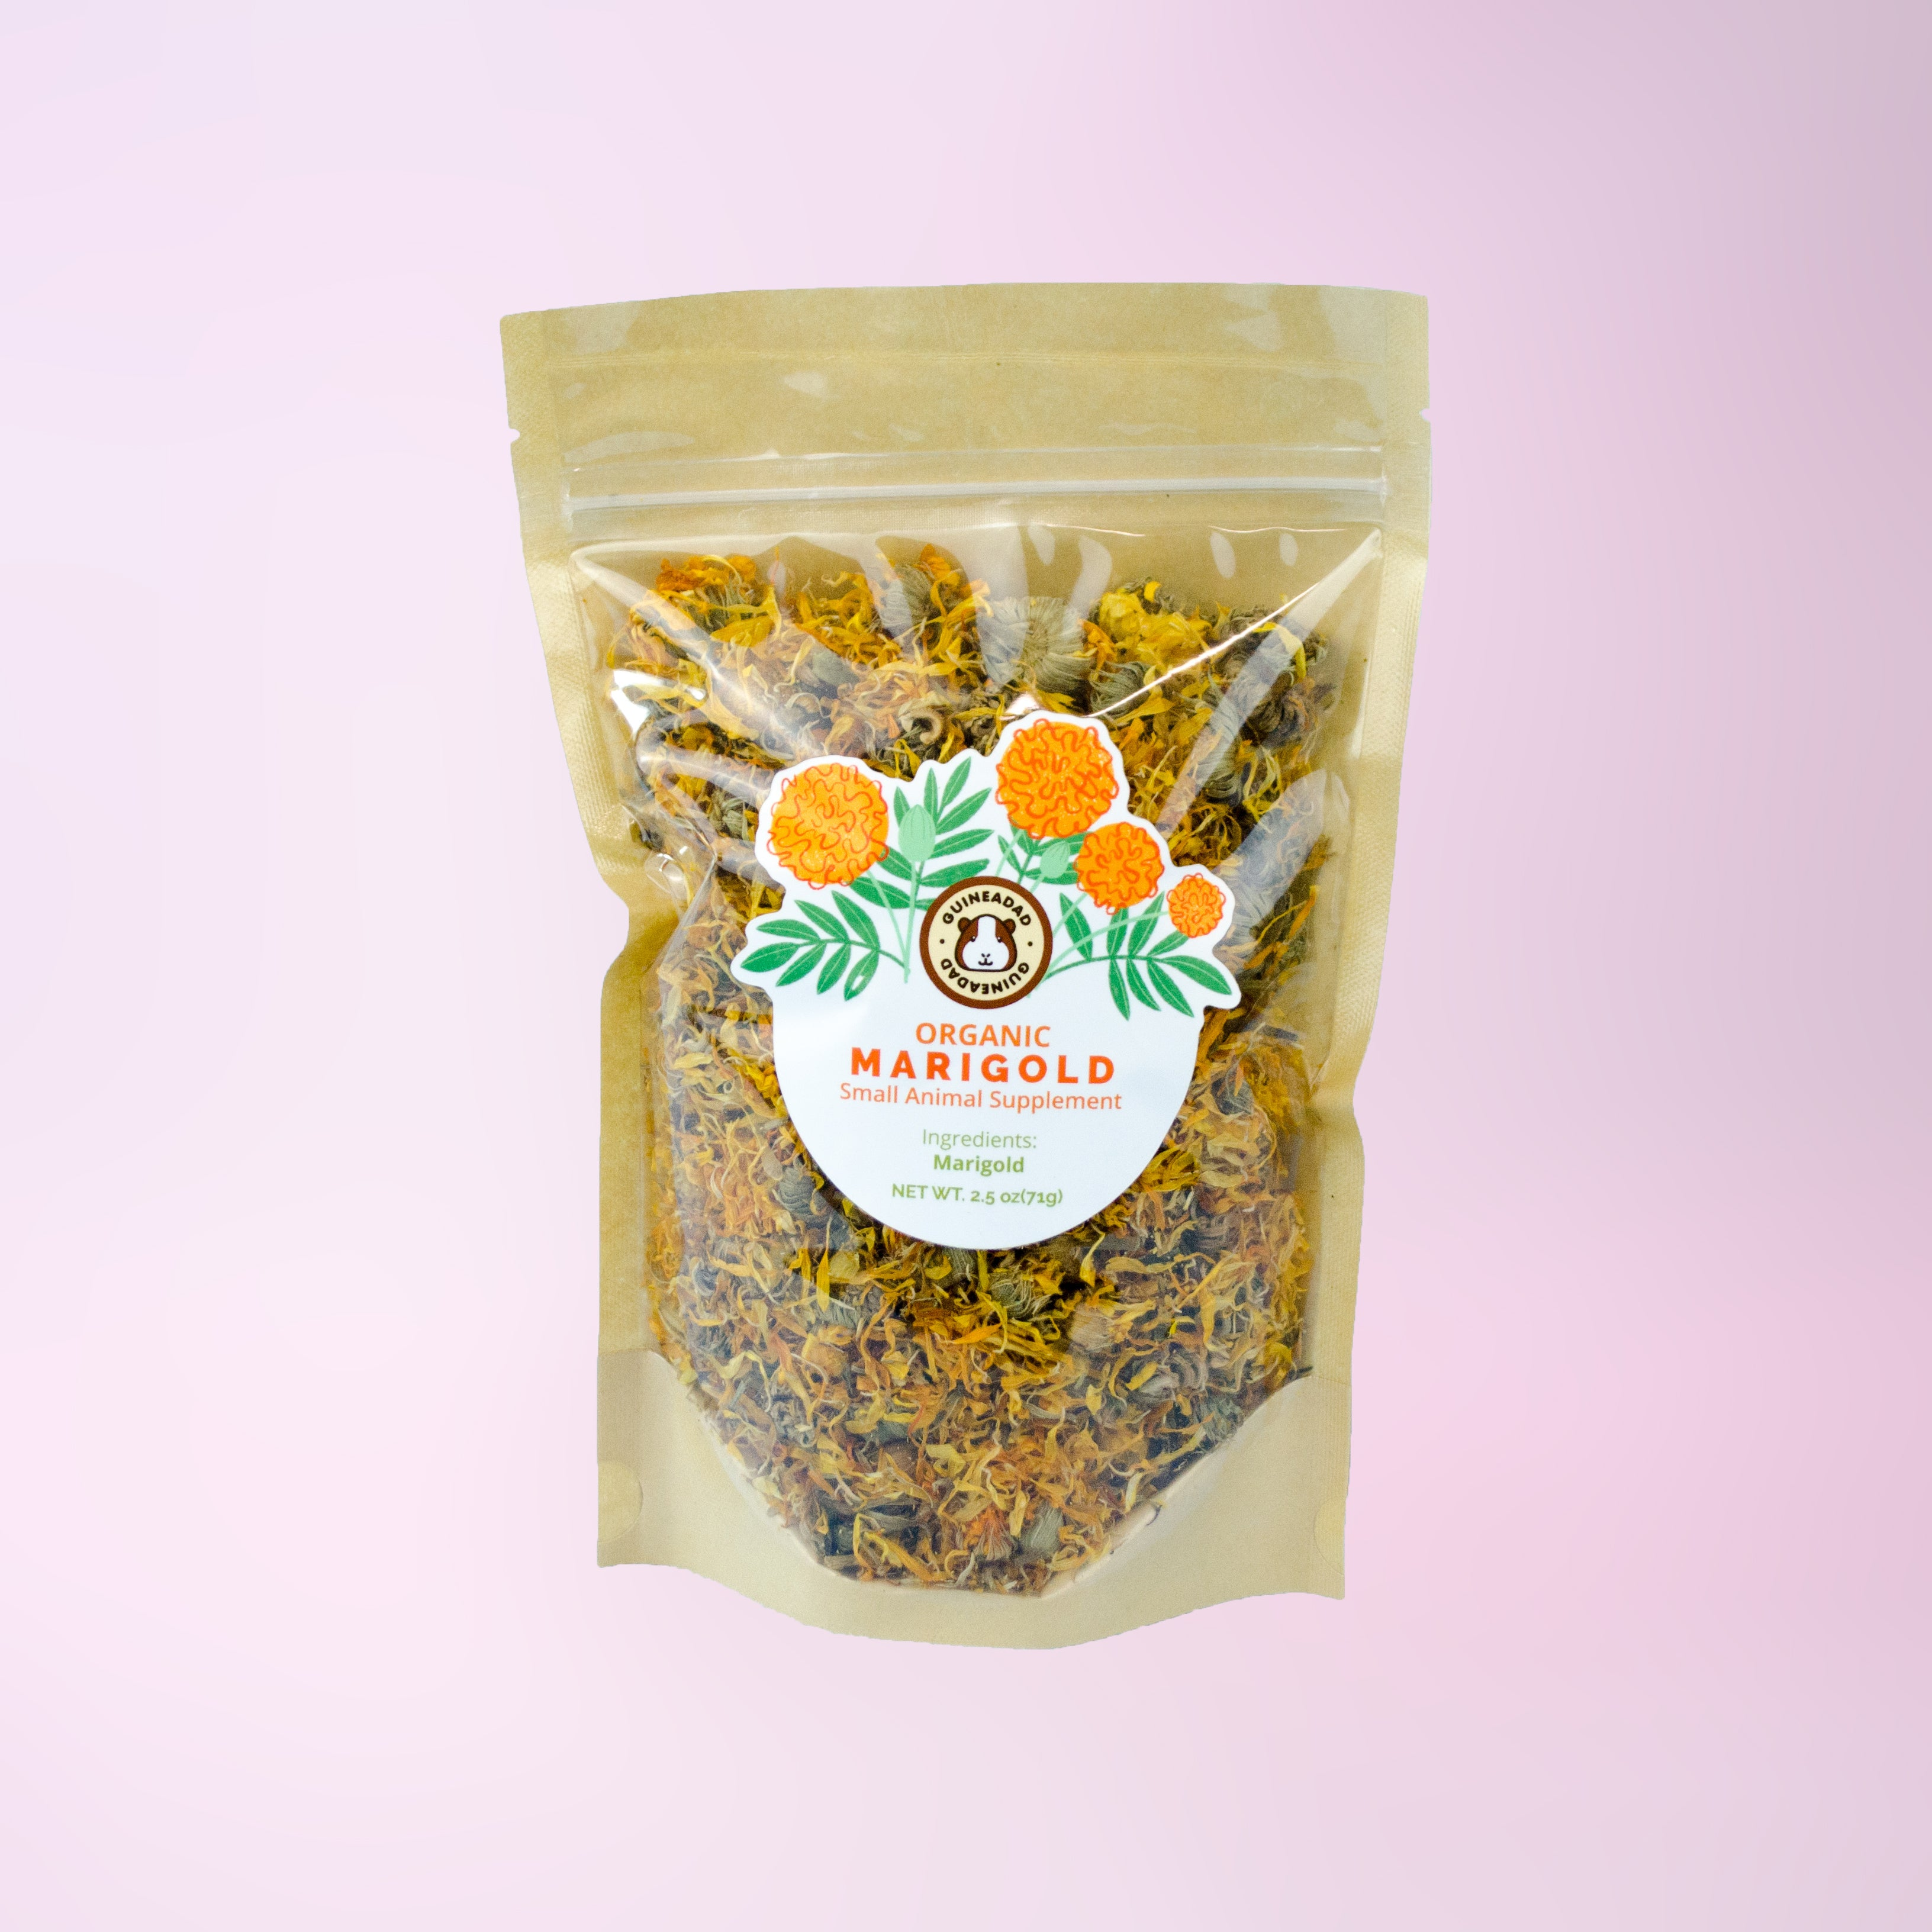 Marigold herbal treats for small animals